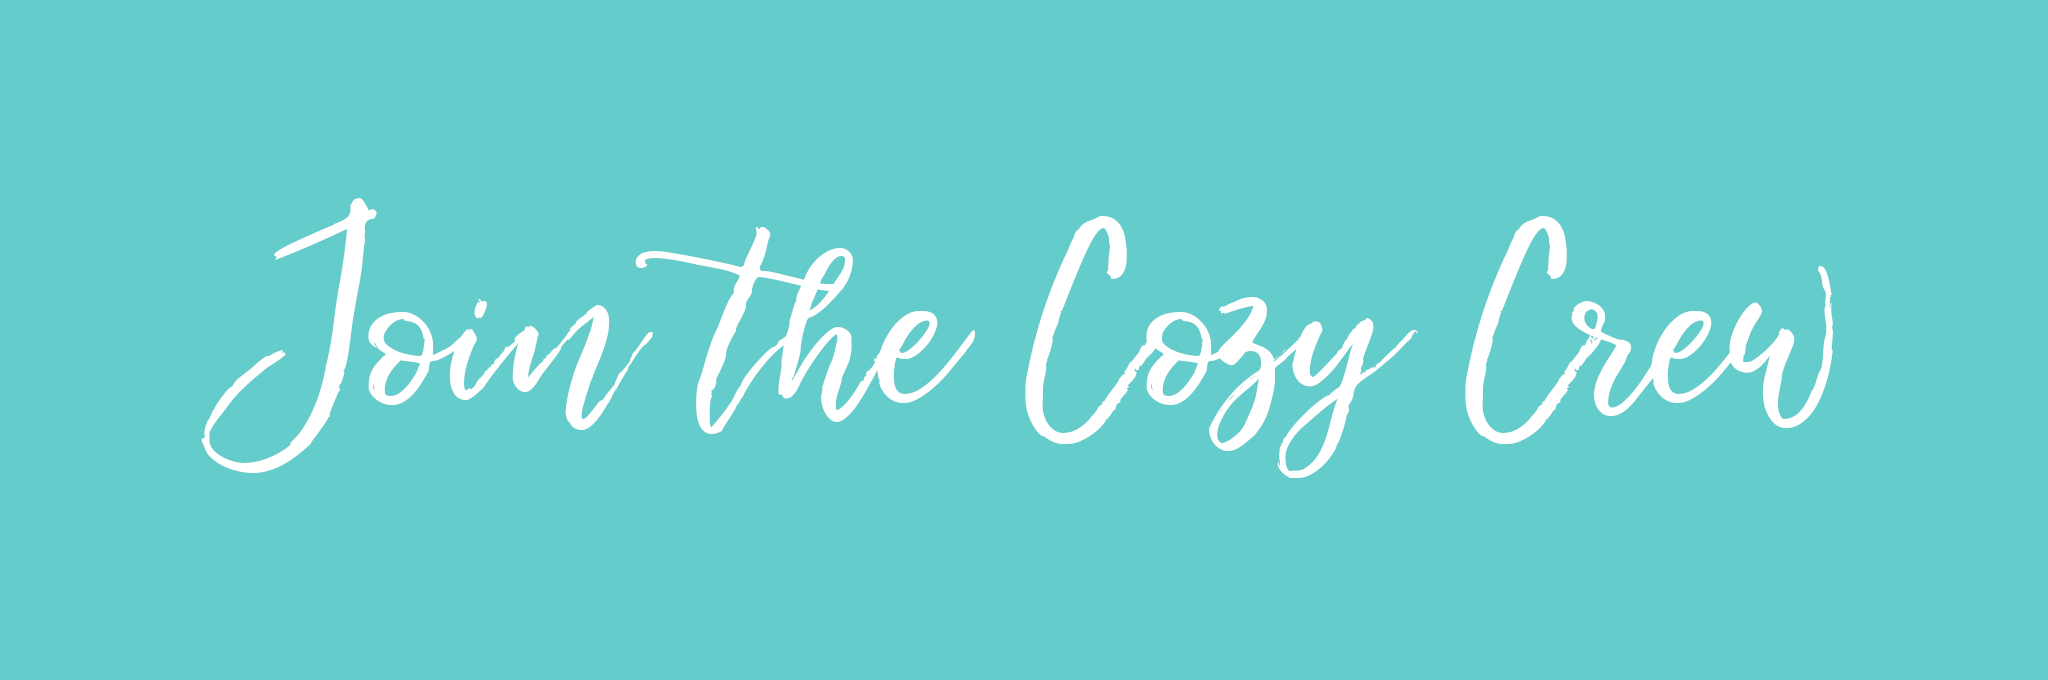 Join The Cozy Crew Email